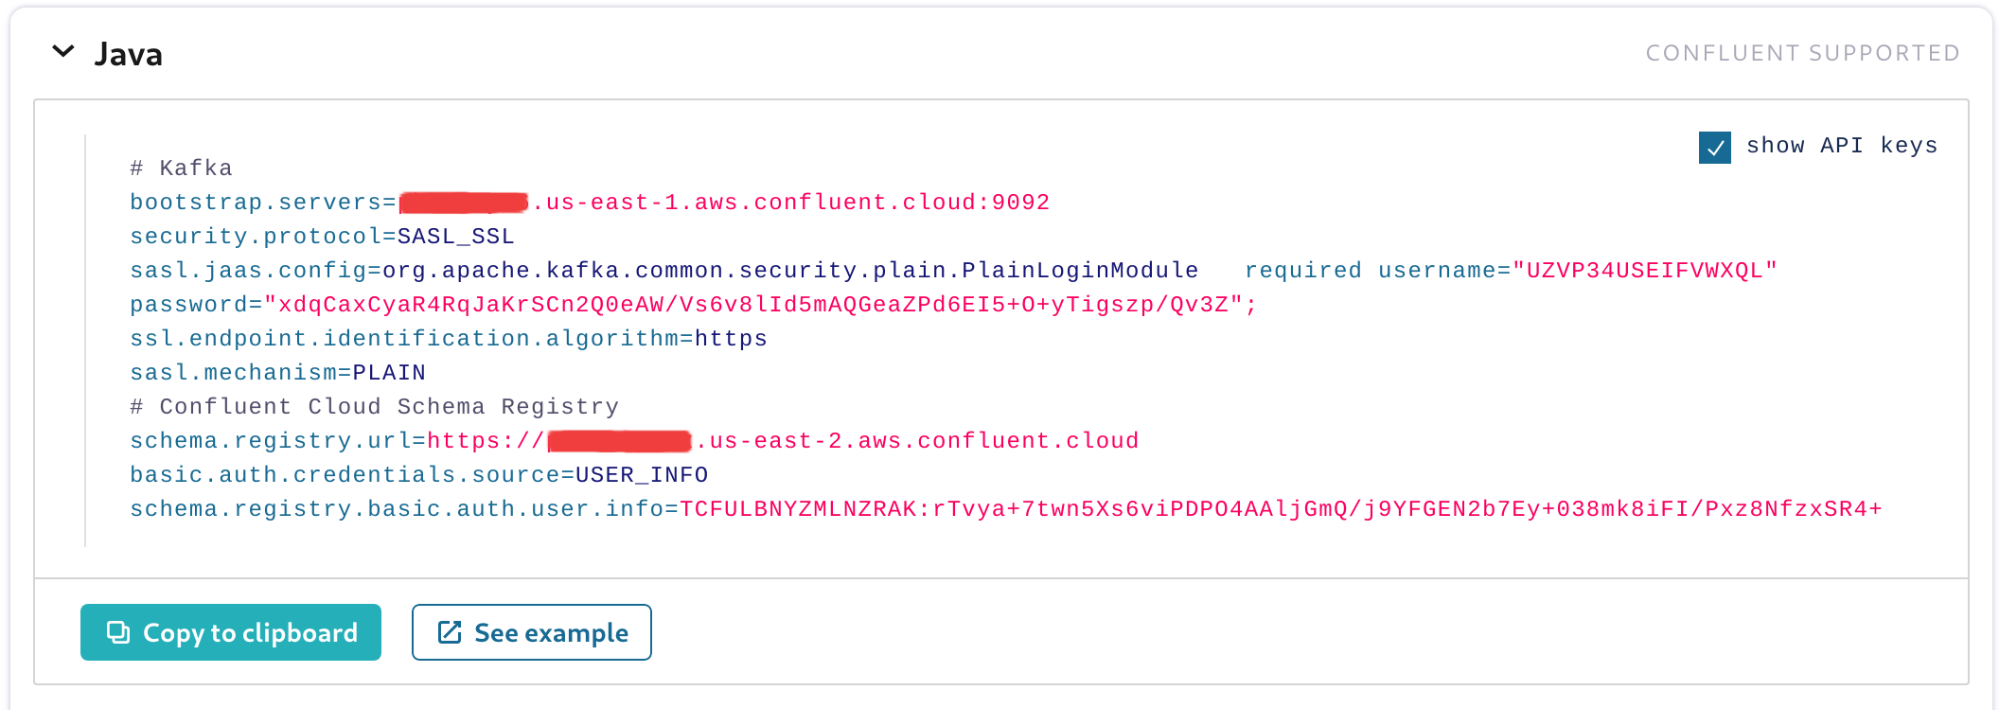 Client configuration ready to be copied to the application